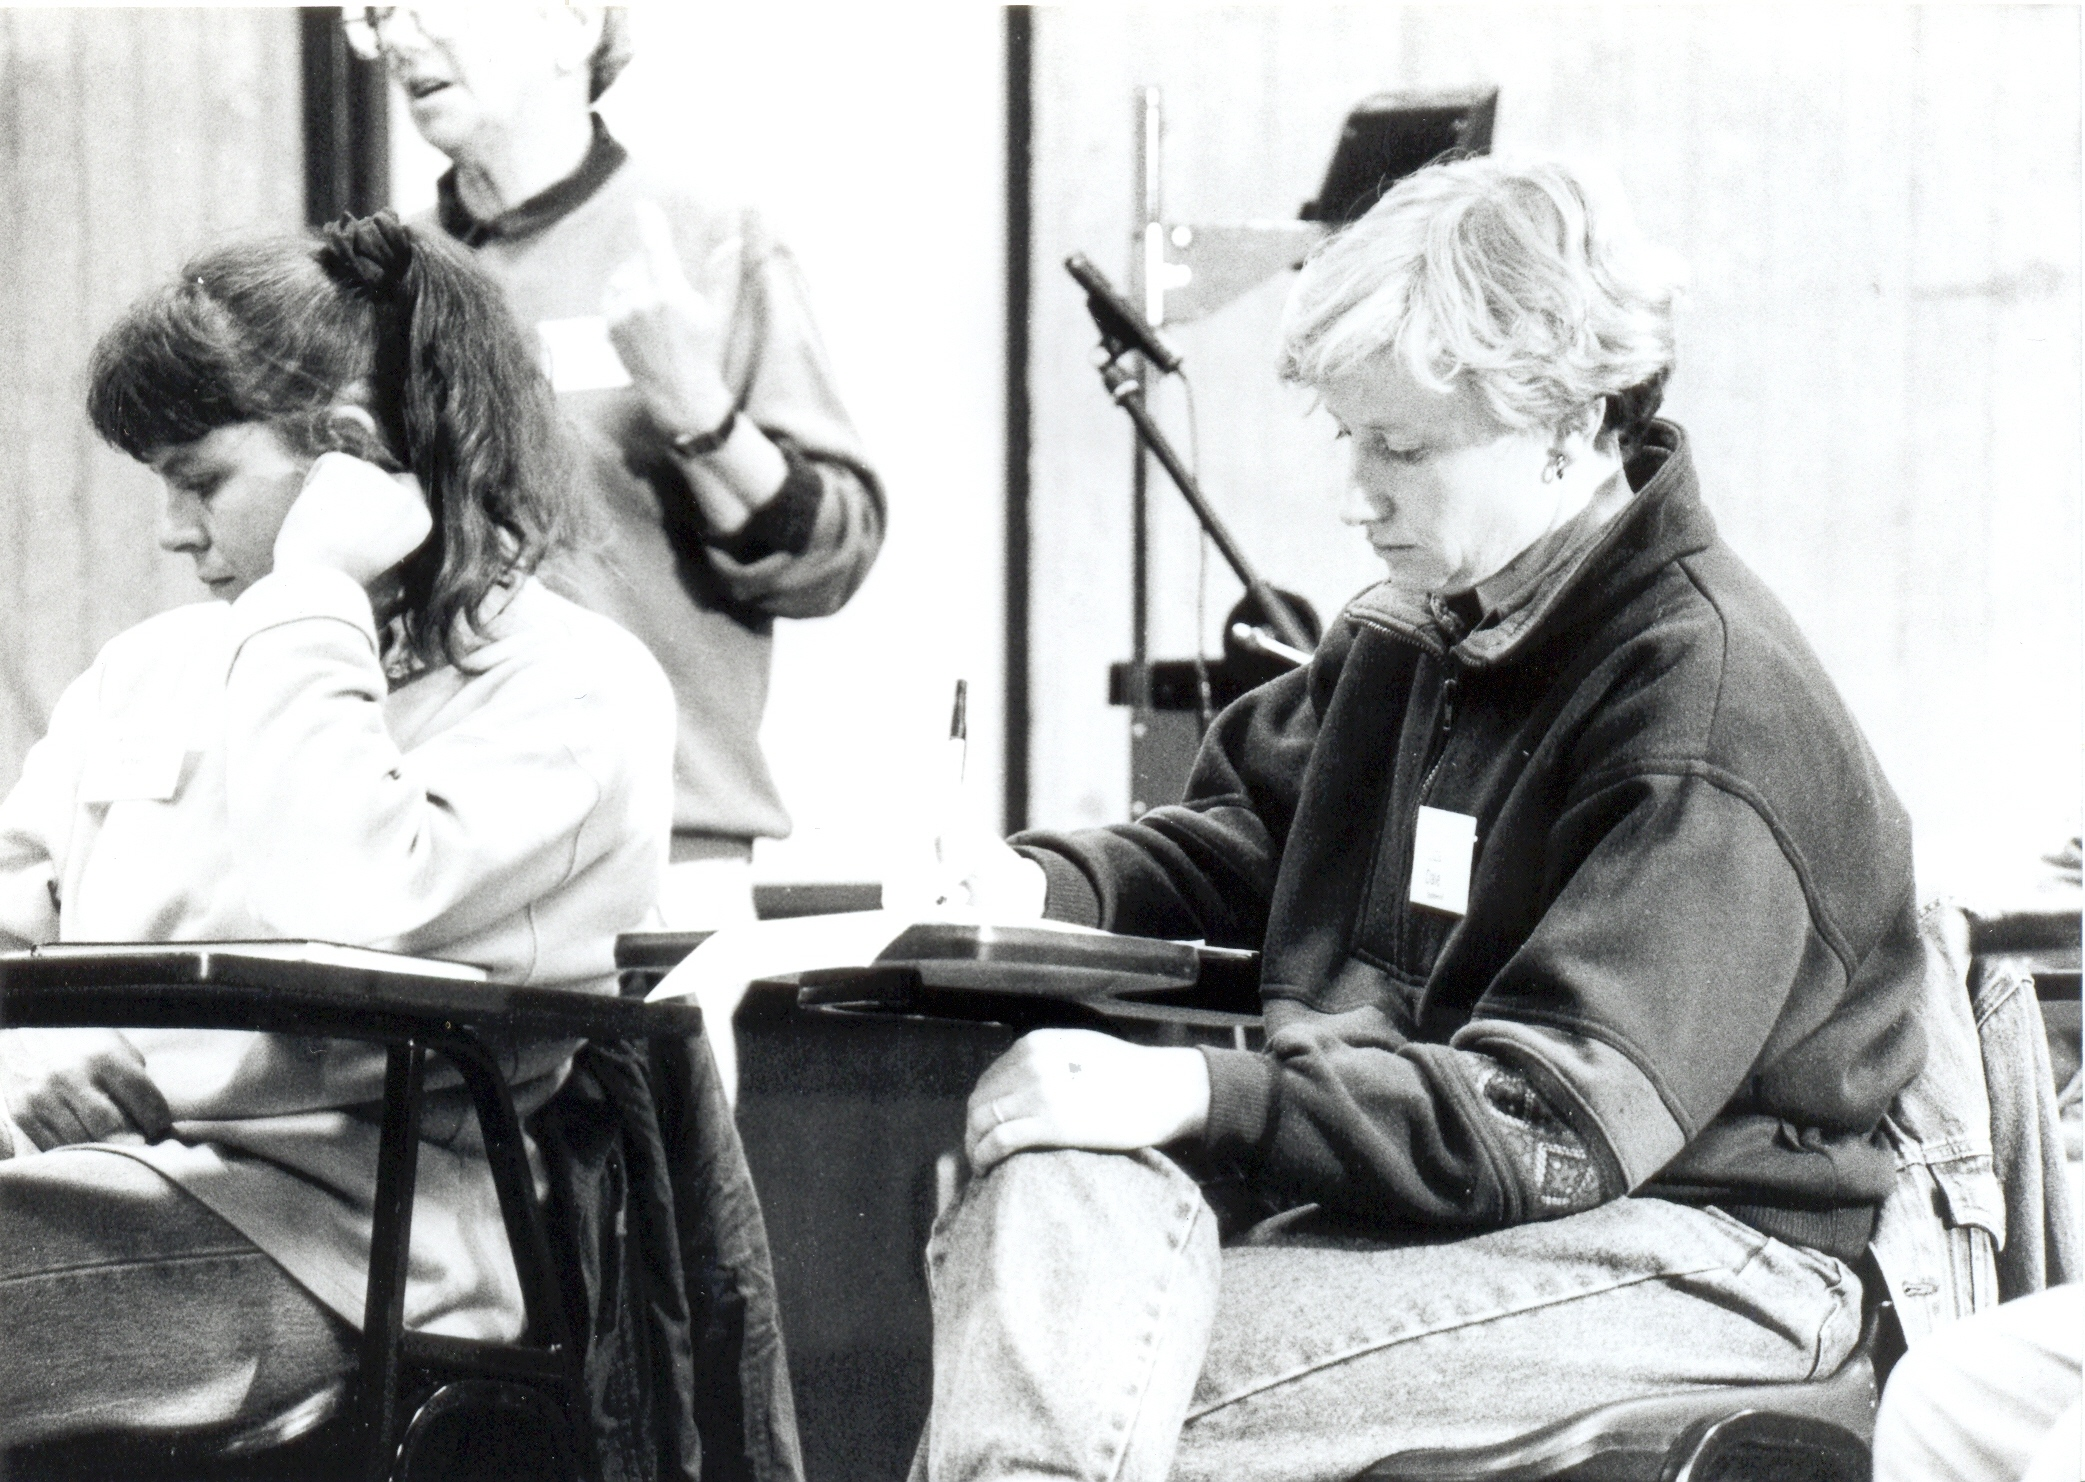 Liza Dale-Hallett at a workshop, Women on Farms Gathering at Glenormiston, 1994, Source: Museums Victoria,MM90502